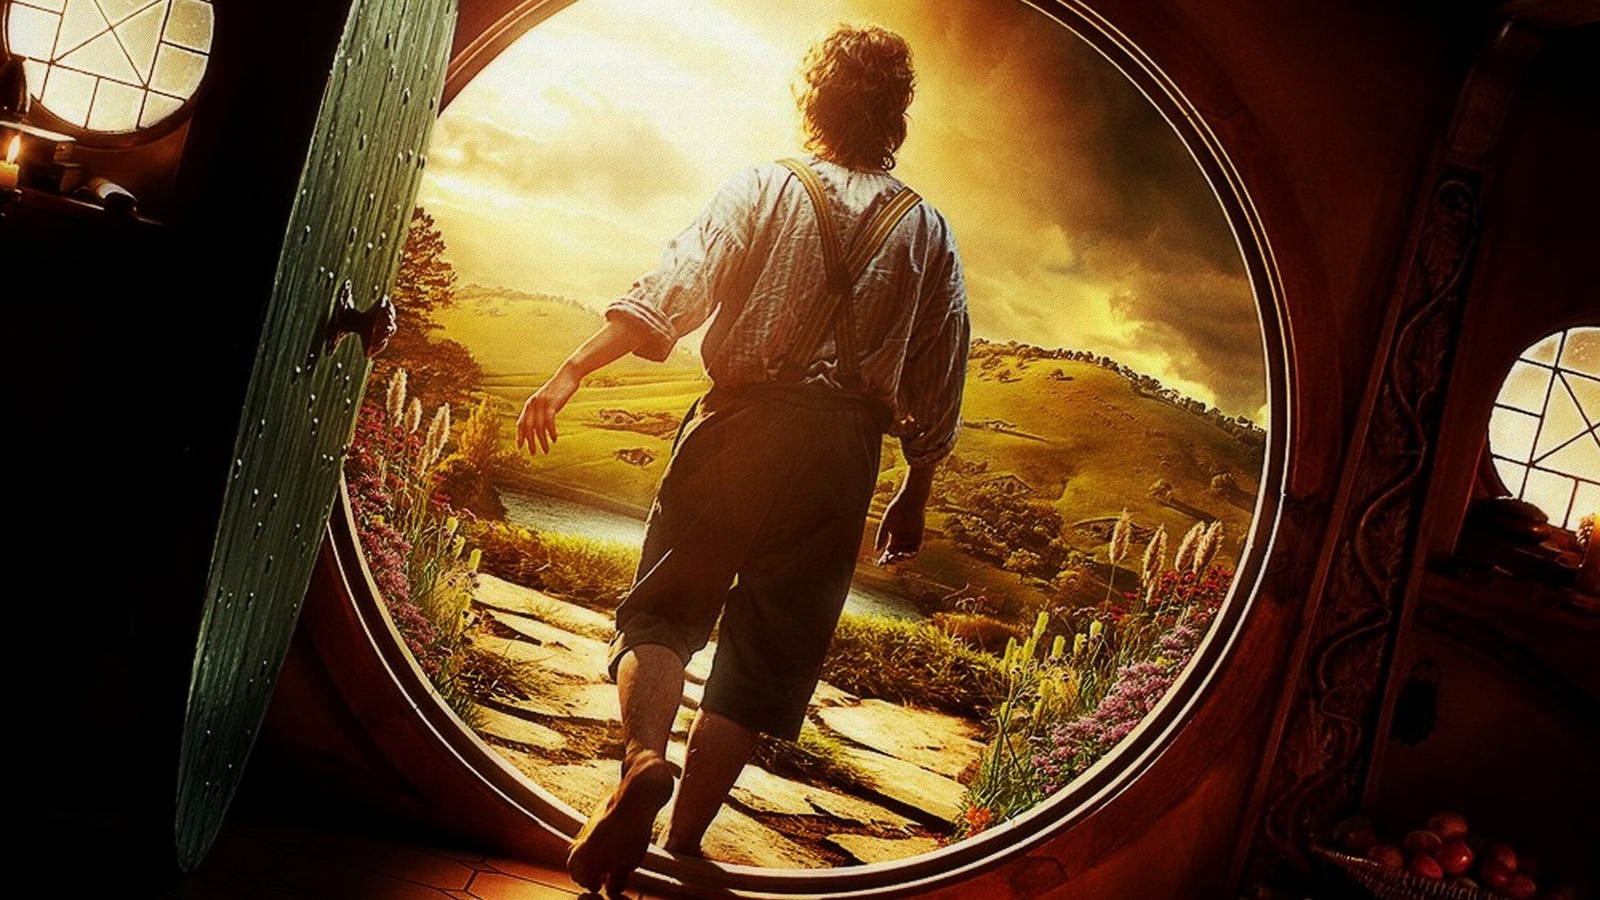 Хоббит: Нежданное путешествие / The Hobbit: An Unexpected Journey background